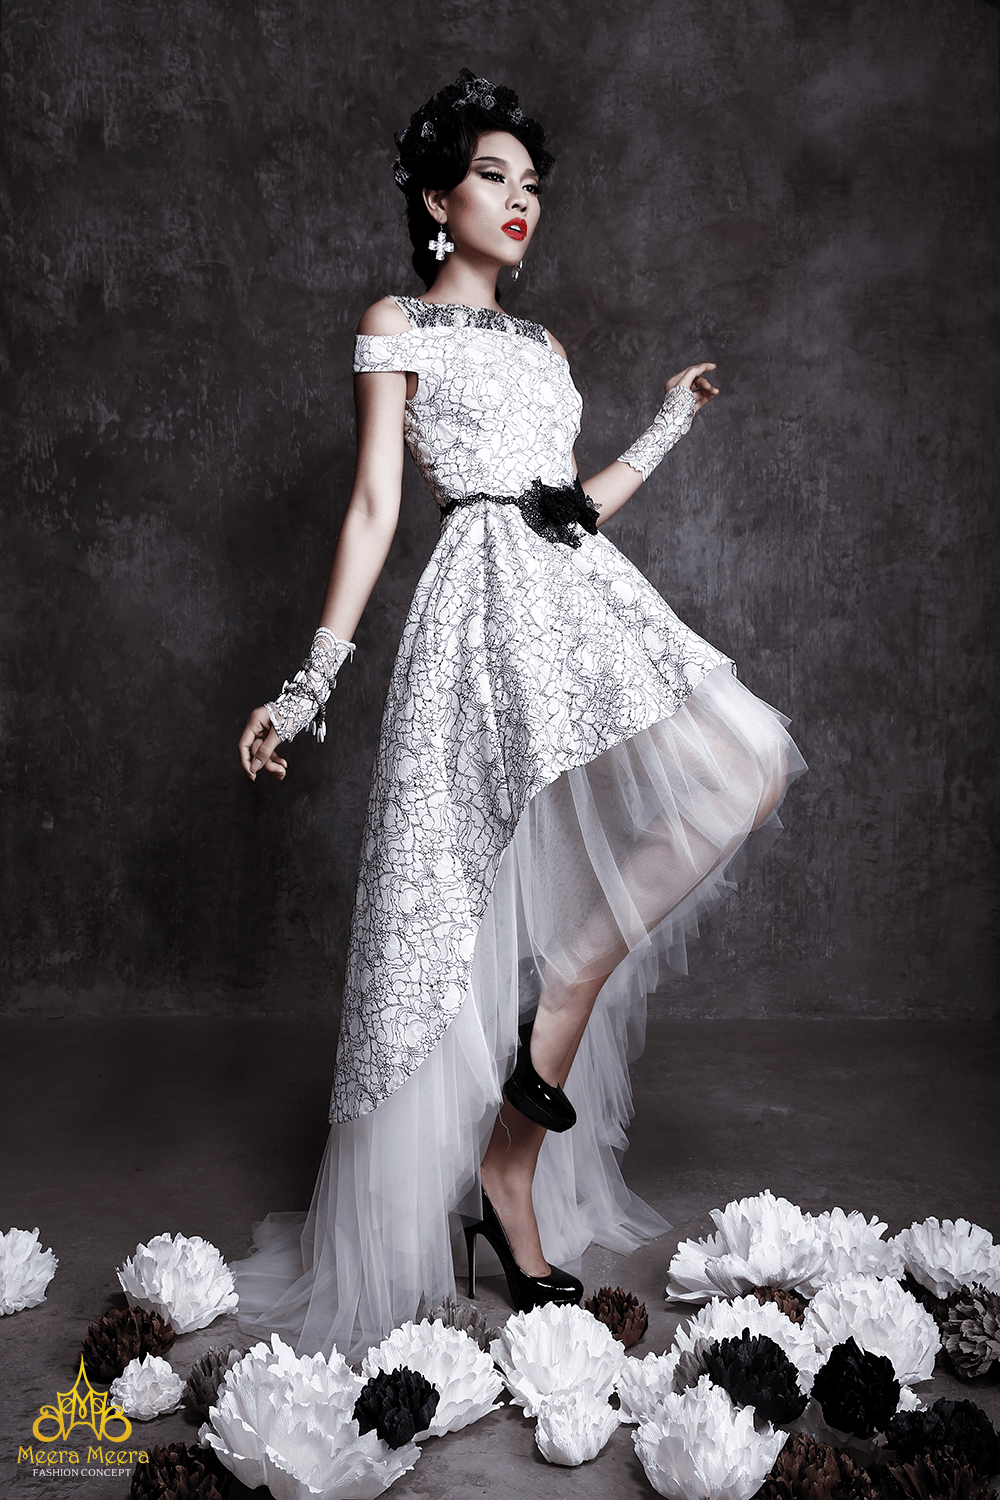 our latest wedding dress collection meera meera fall black lace wedding dress mullet wedding dress in black and white floral lace Image Image